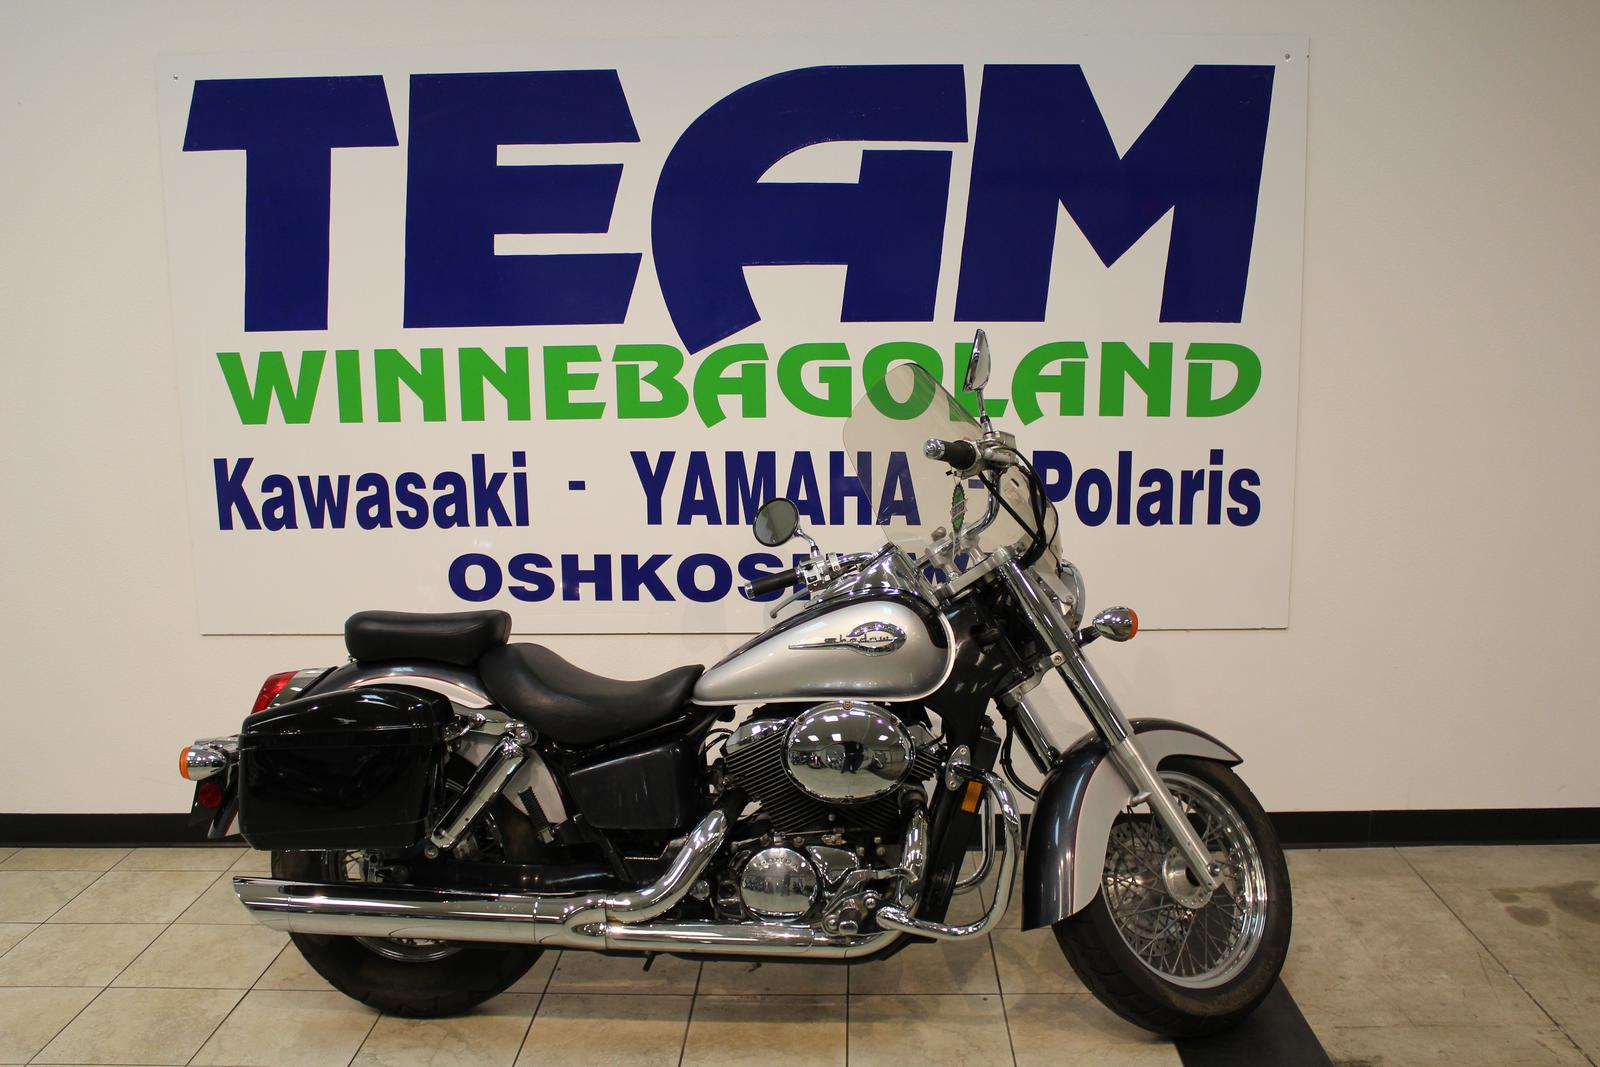 2003 Honda Shadow 750 Ace, motorcycle listing